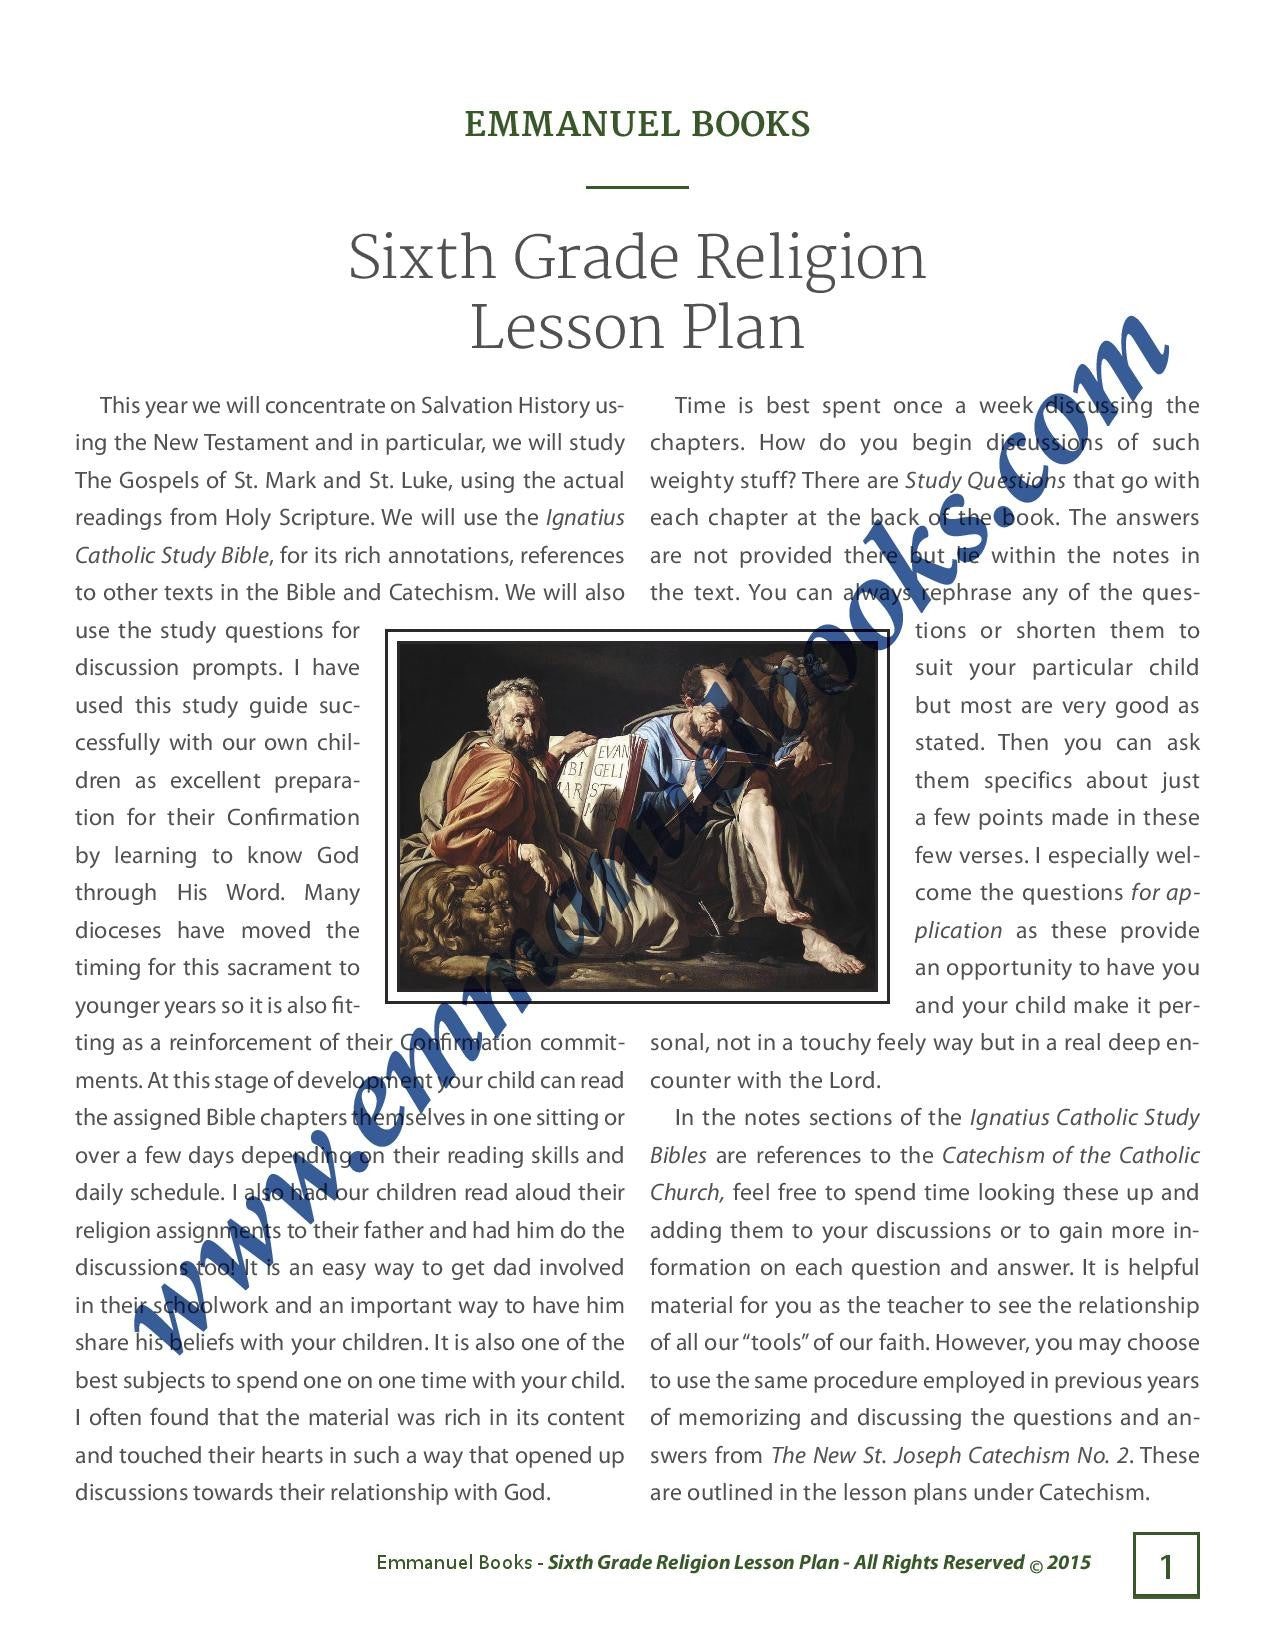 Emmanuel Books Sixth Grade Religion Lesson Plan